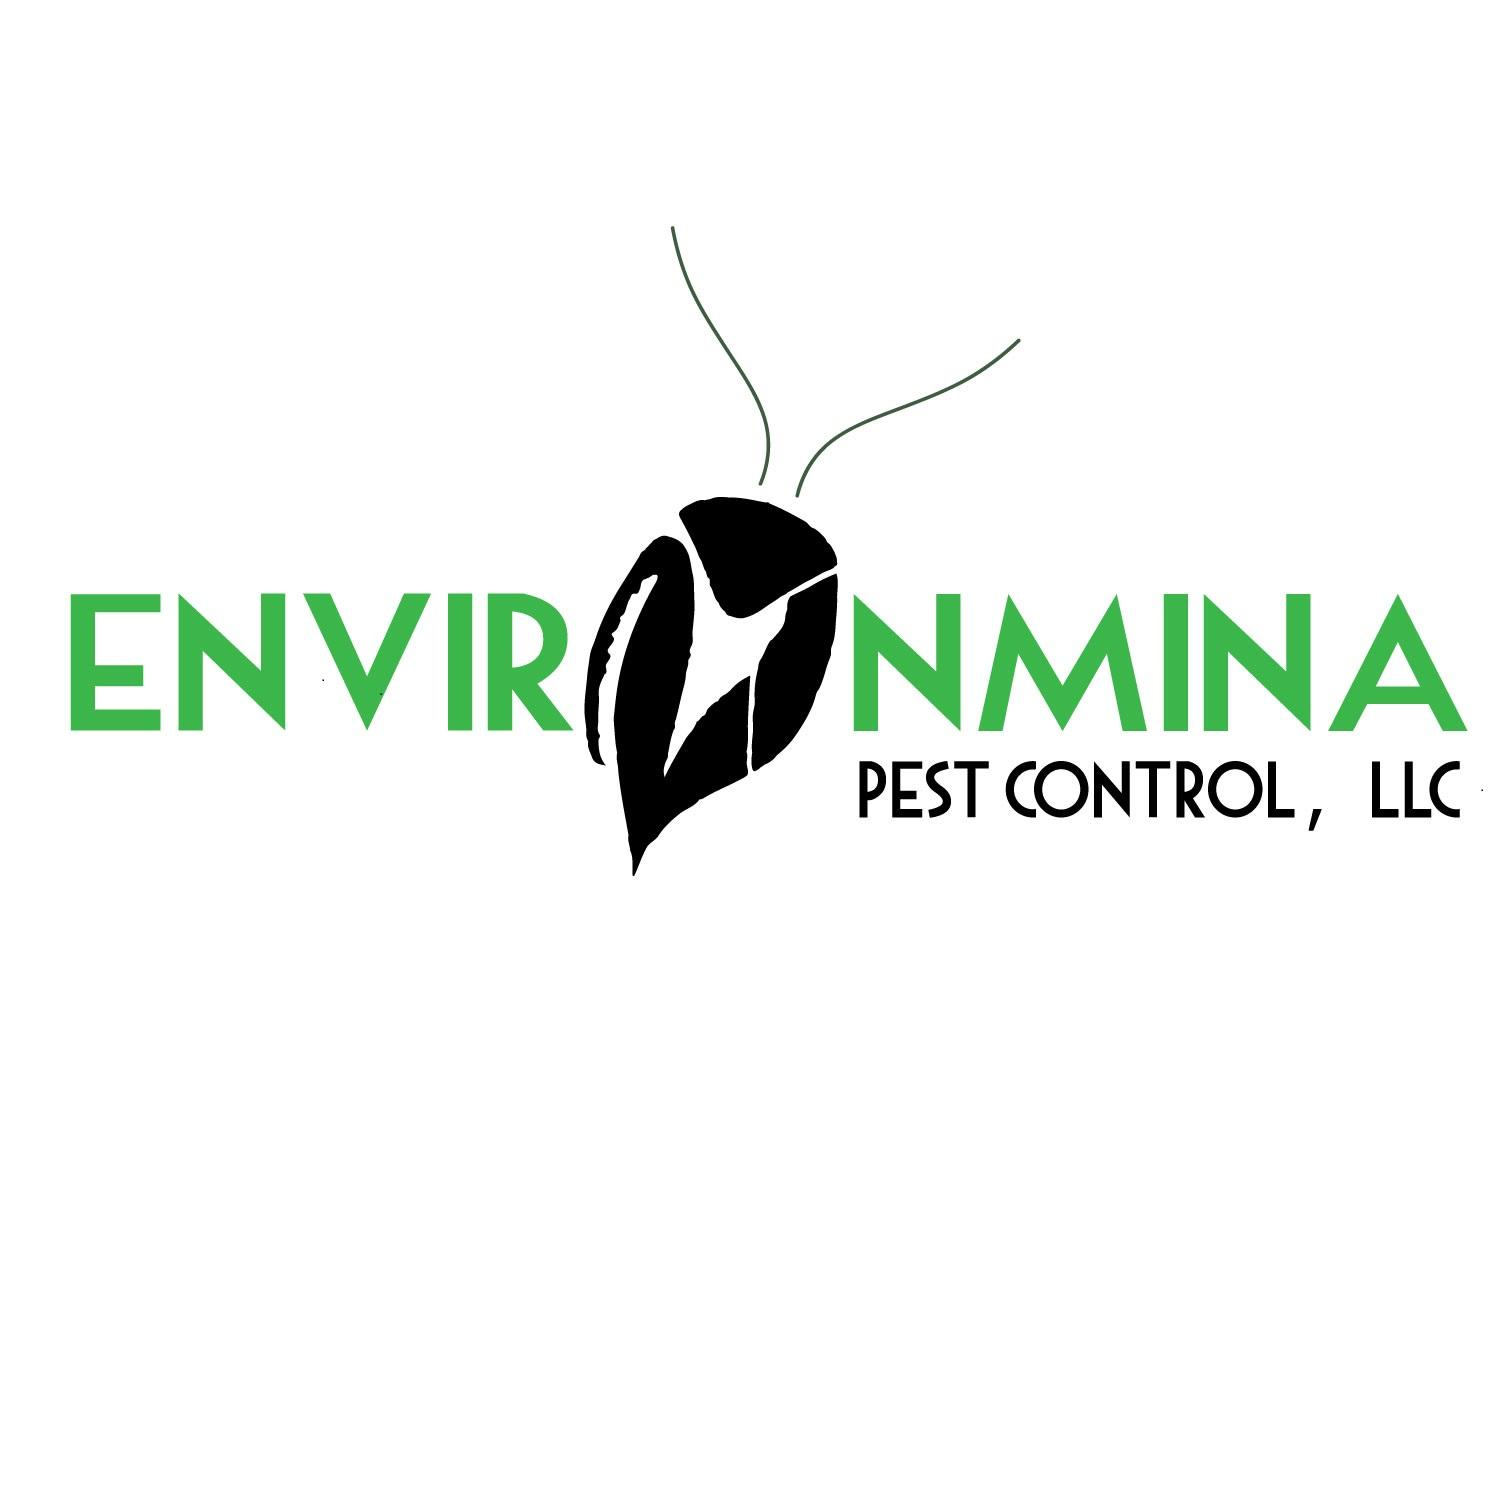 Environmina Pest Control LLC